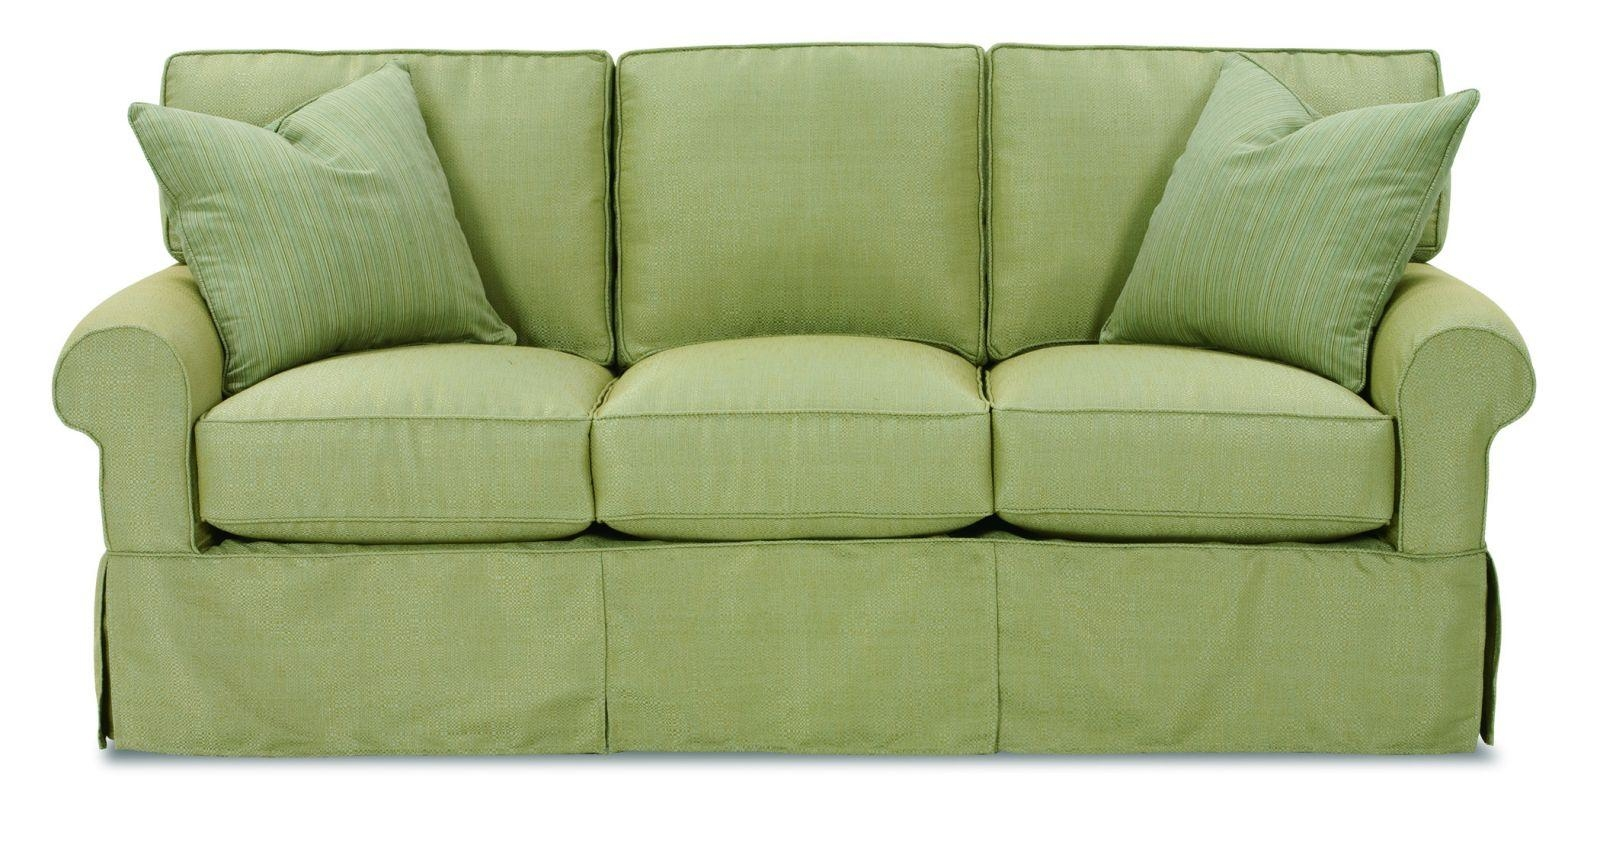 Furniture: Slipcovers For Sectional Sofa | 3 Cushion Sofa With Regard To Slipcovers For 3 Cushion Sofas (Image 6 of 20)